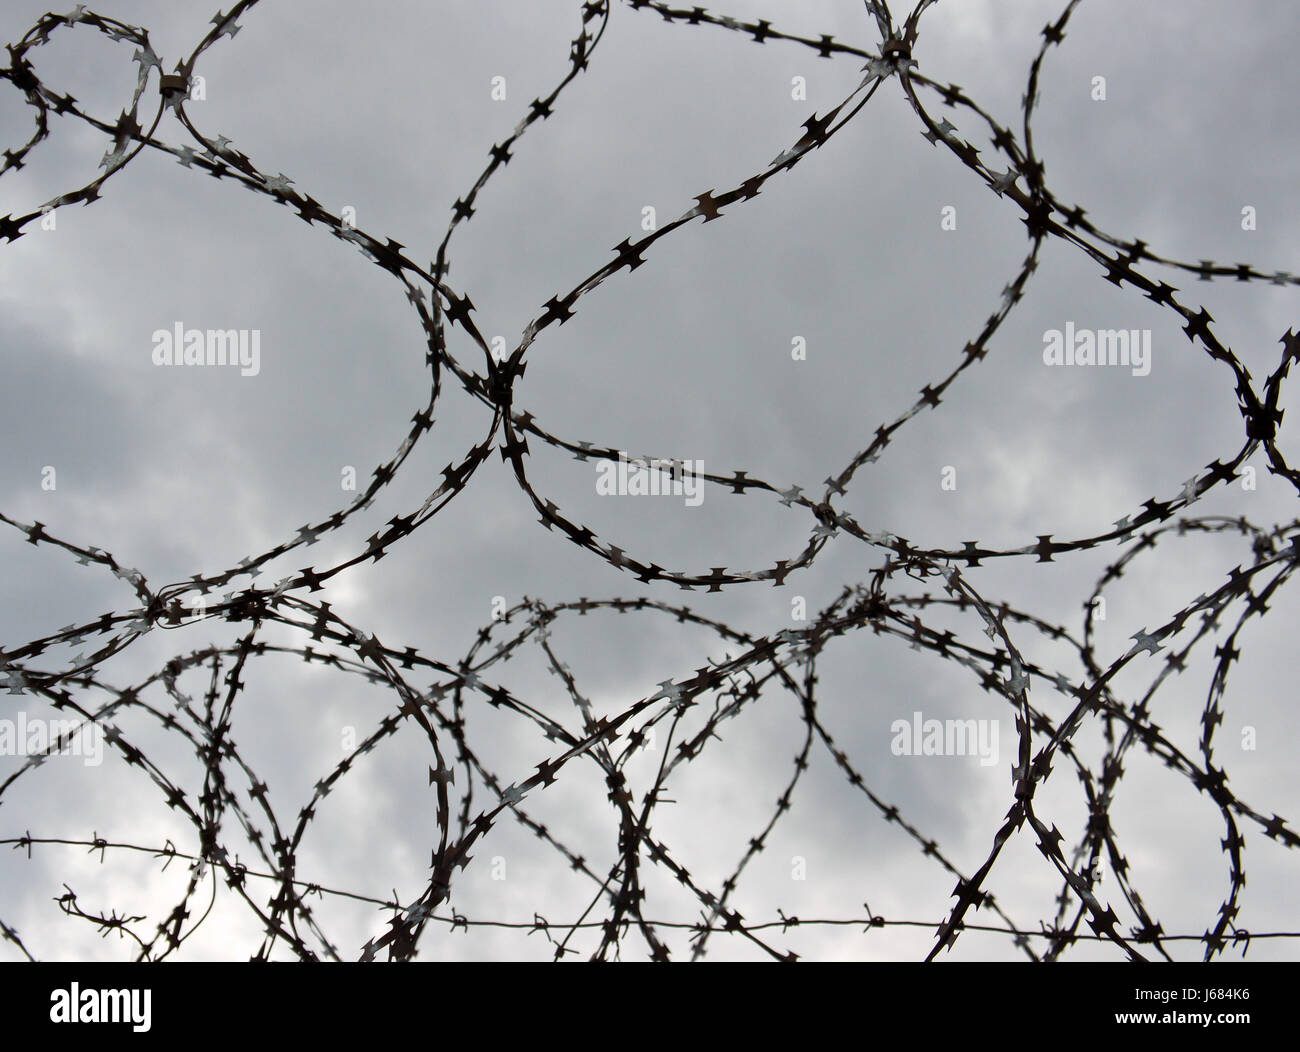 Barbed wire on a cloudy sky background - Stock Image